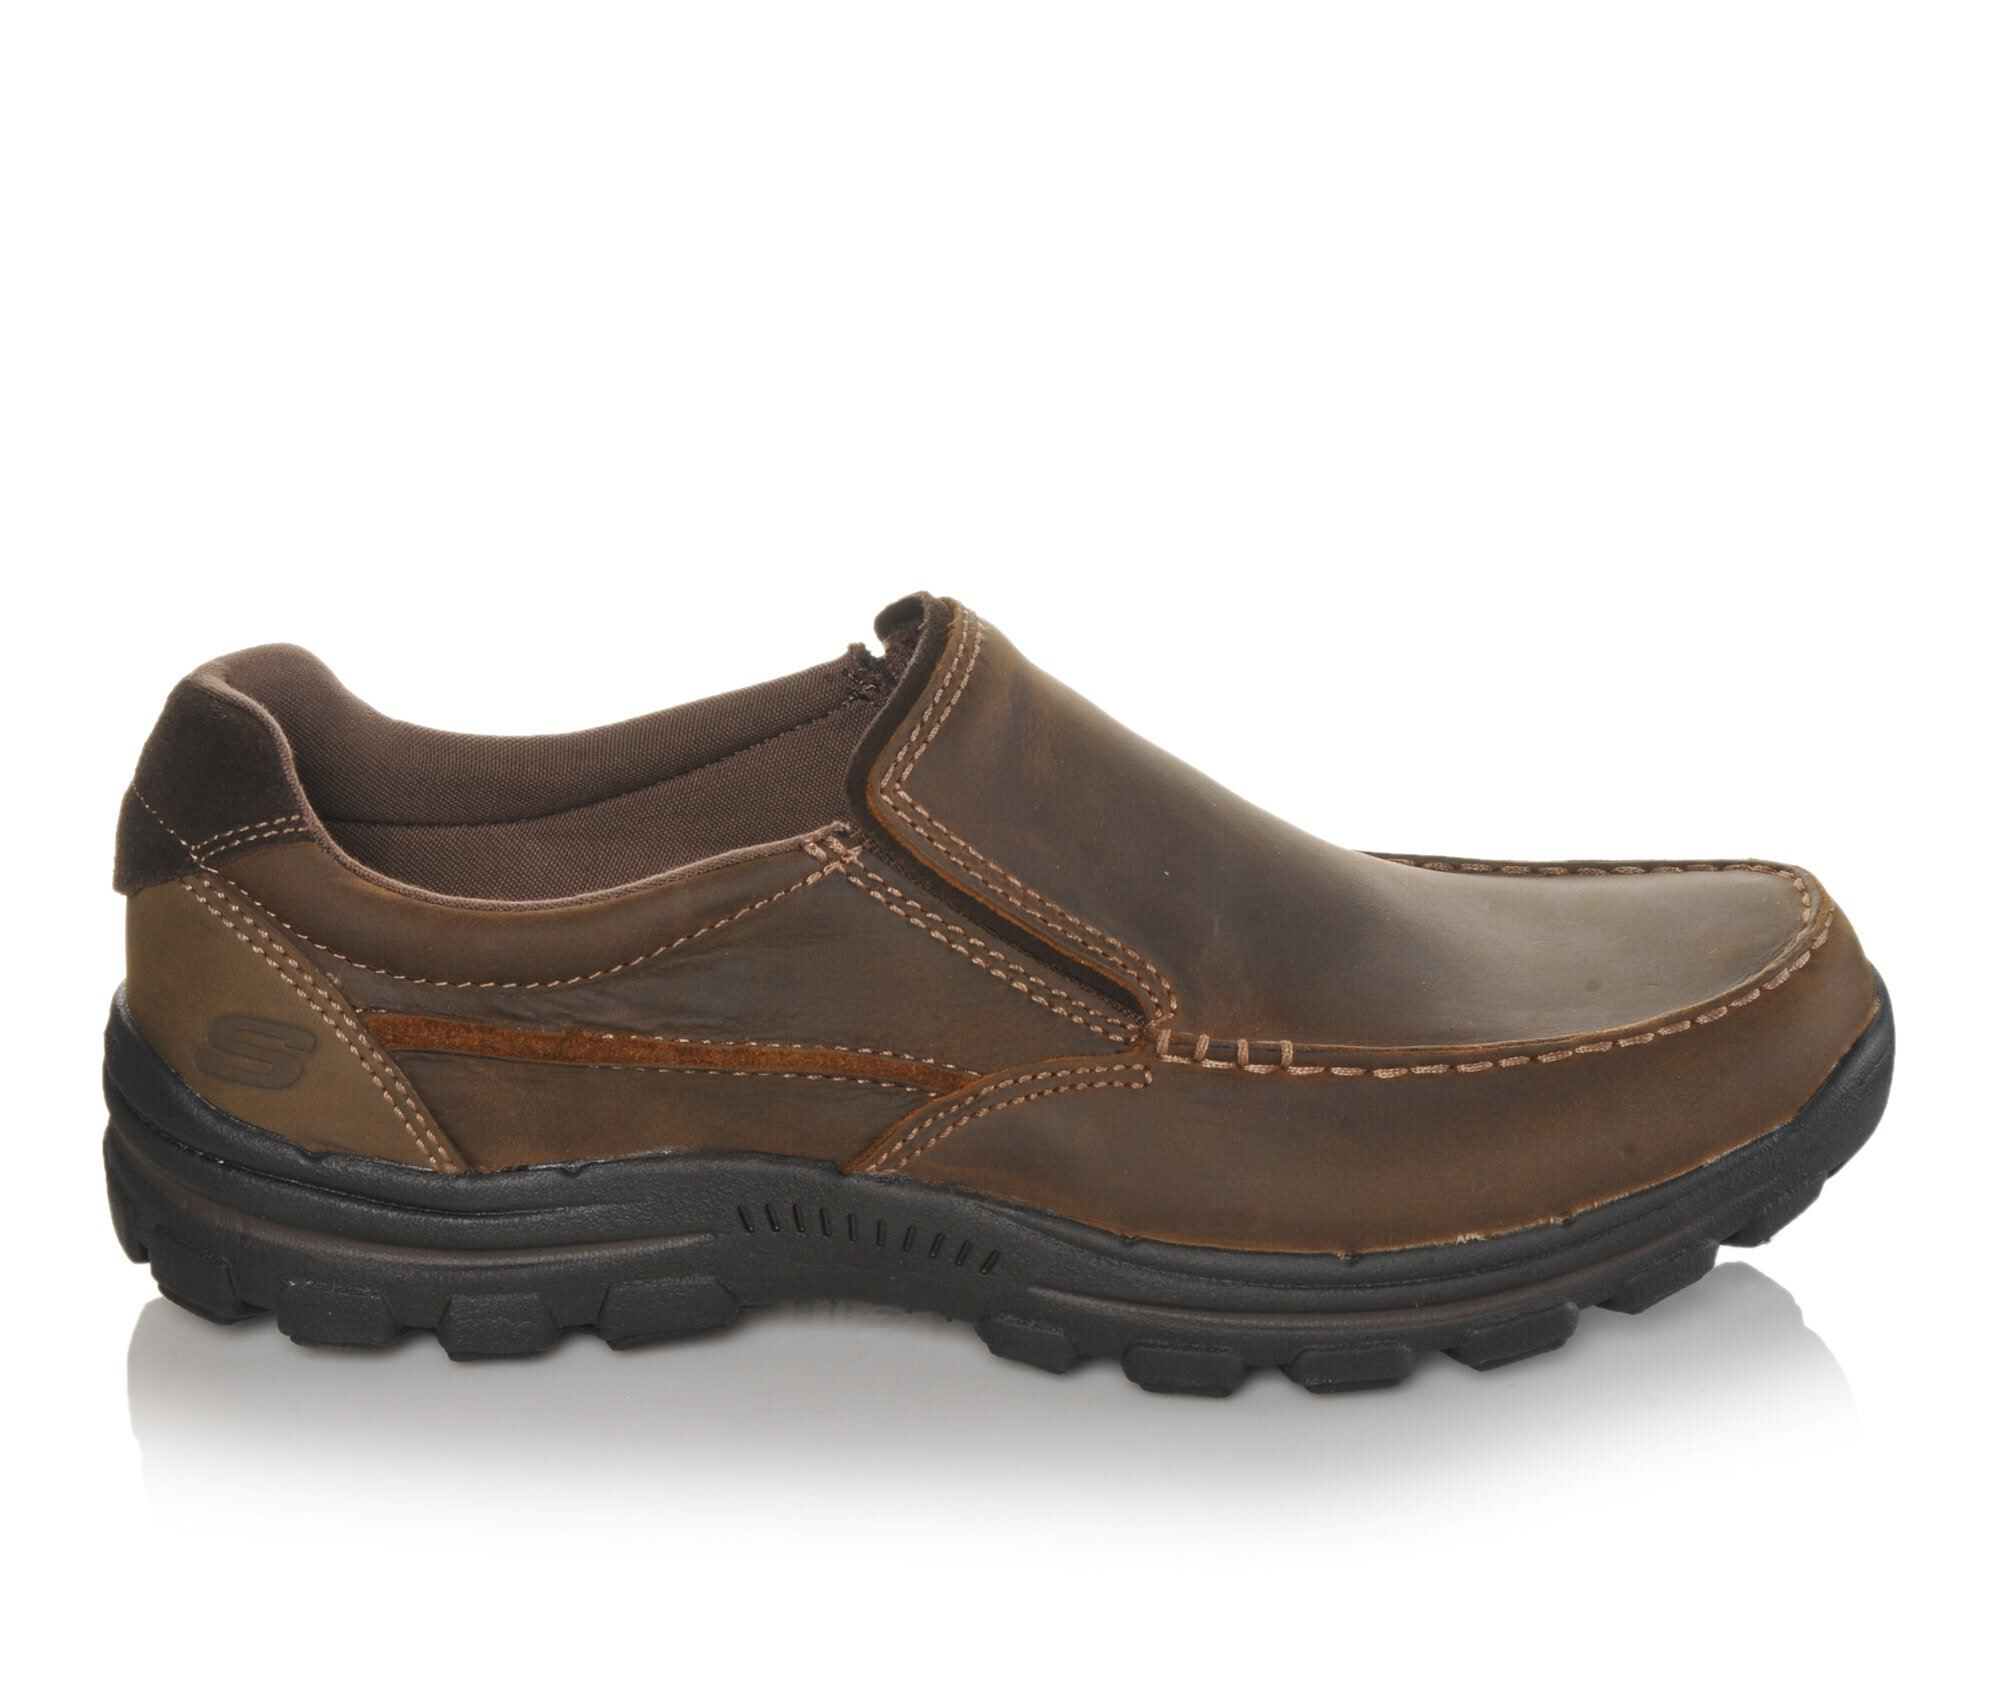 buy authentic new Men's Skechers Rayland 64502 Slip-On Shoes Crazy Horse